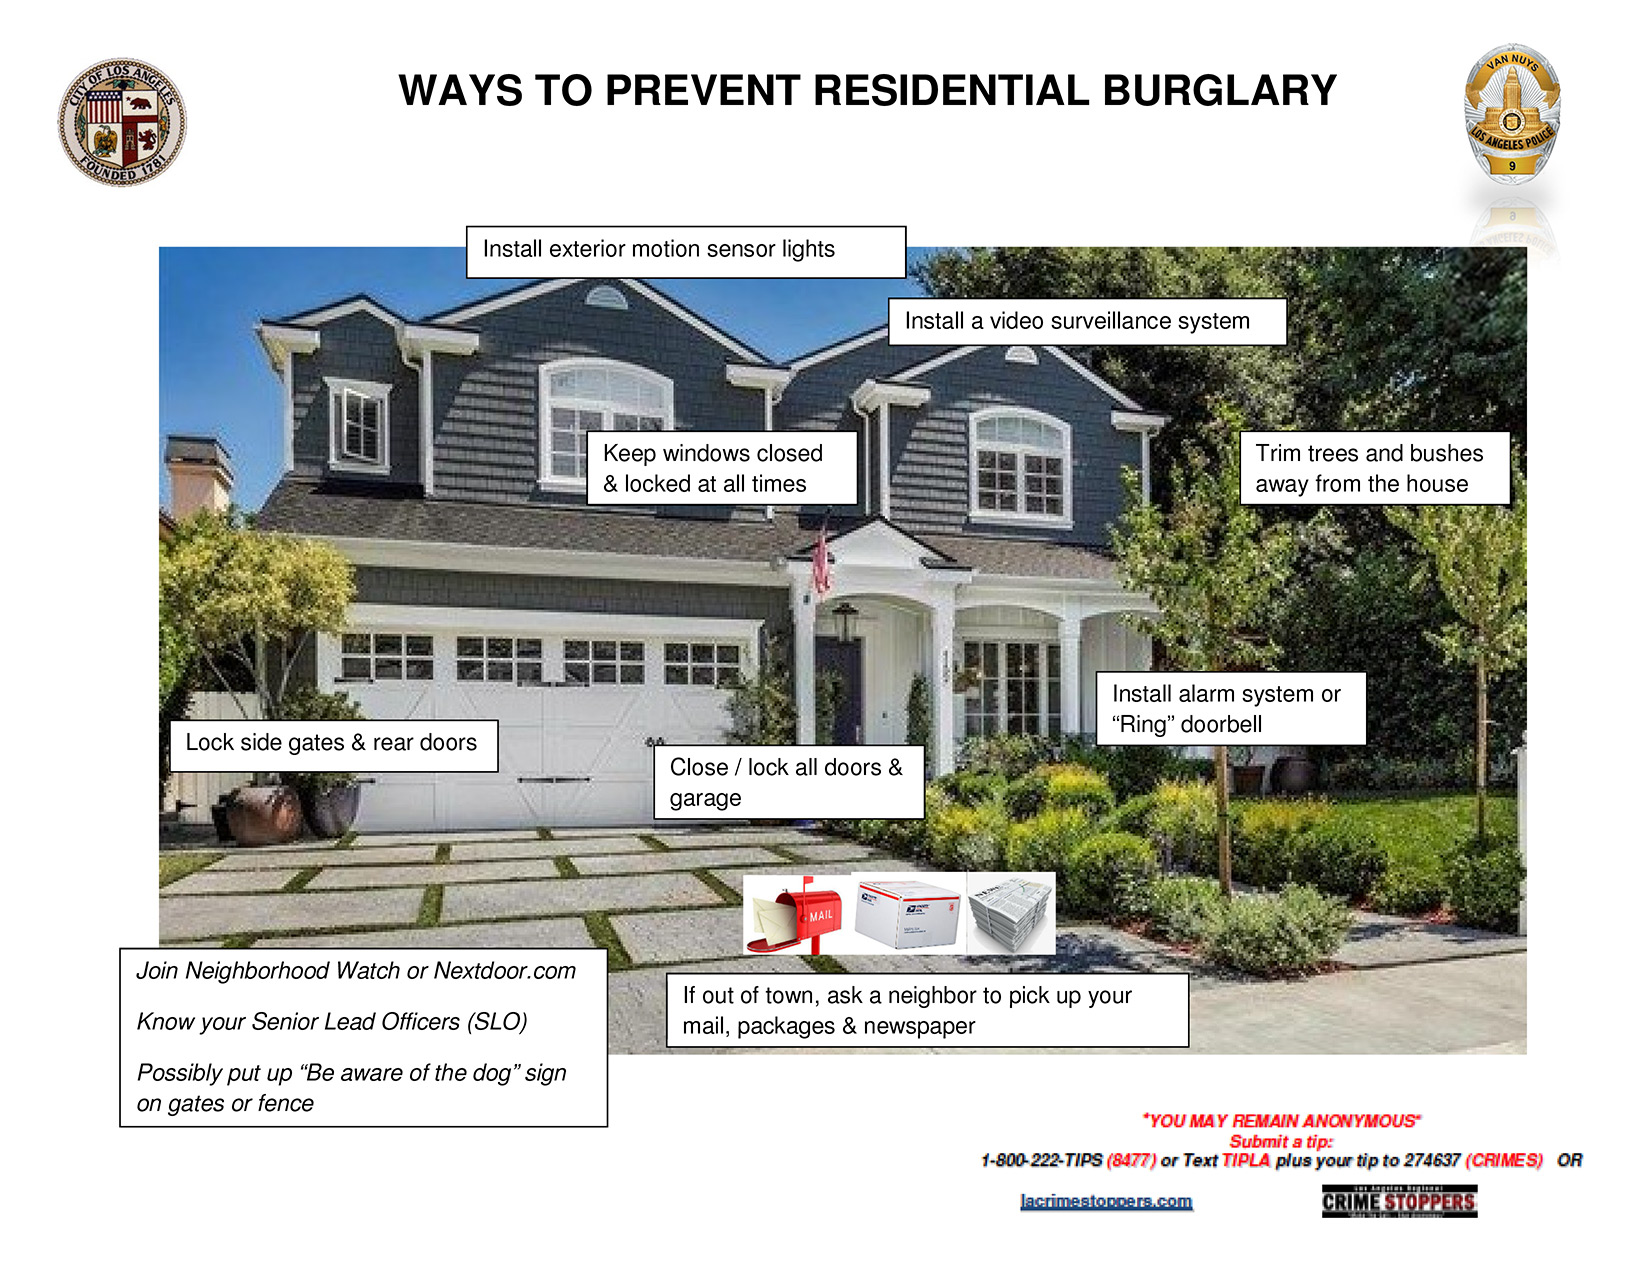 Ways to prevent residential burglary